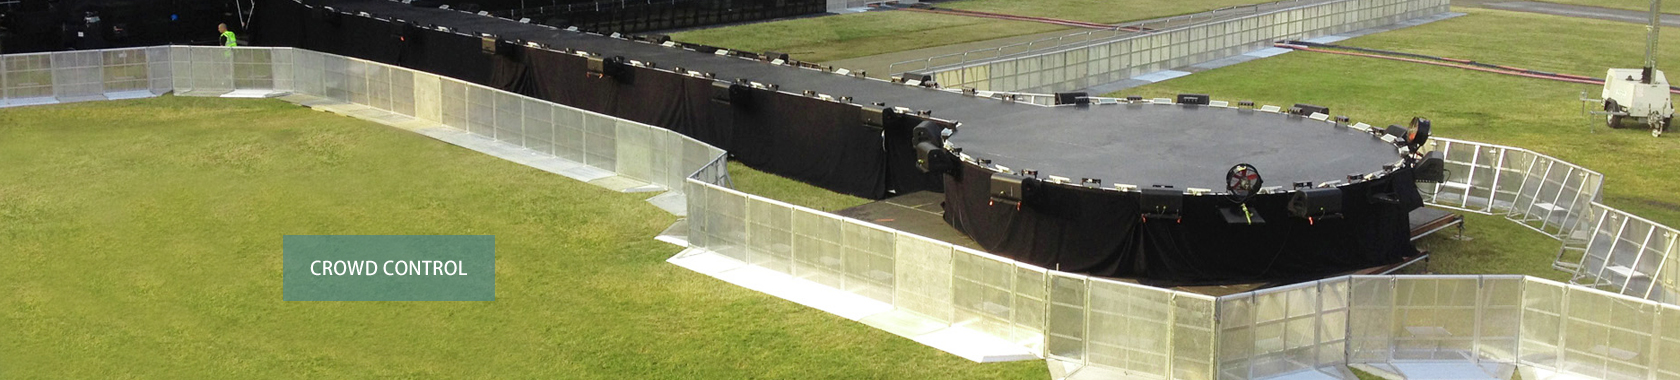 SNAKE Gate Barriers For Stage Crowd Control